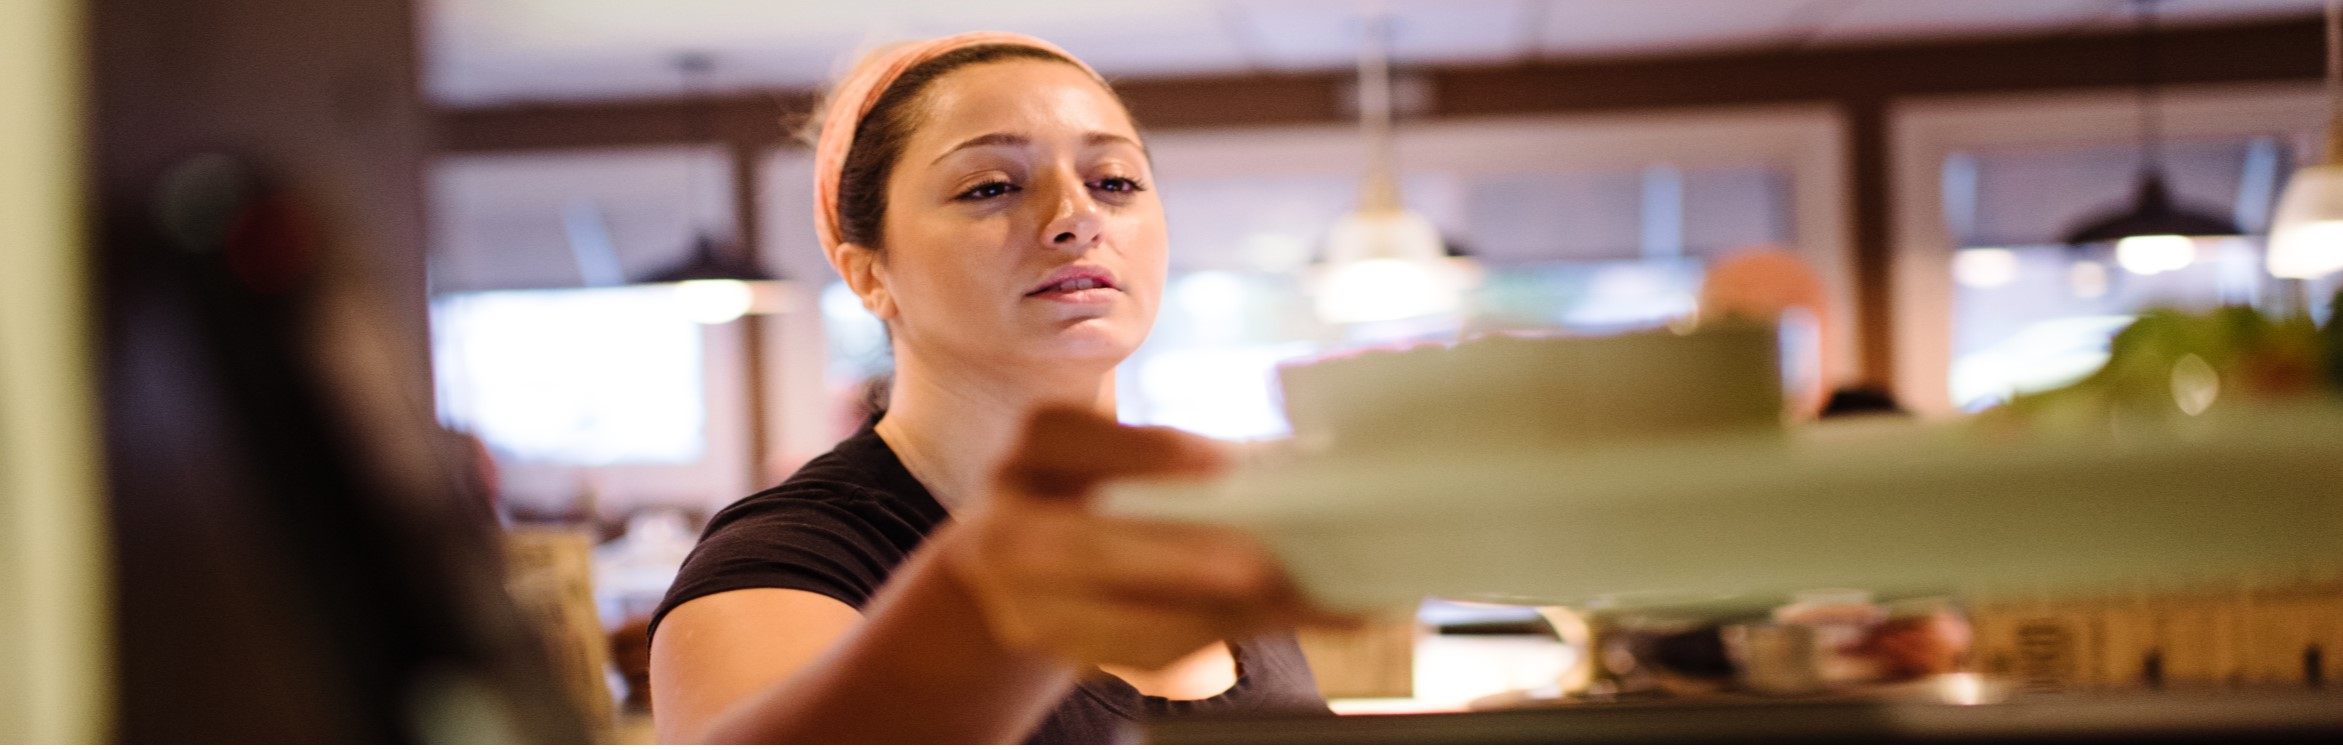 Waitress picking up a meal